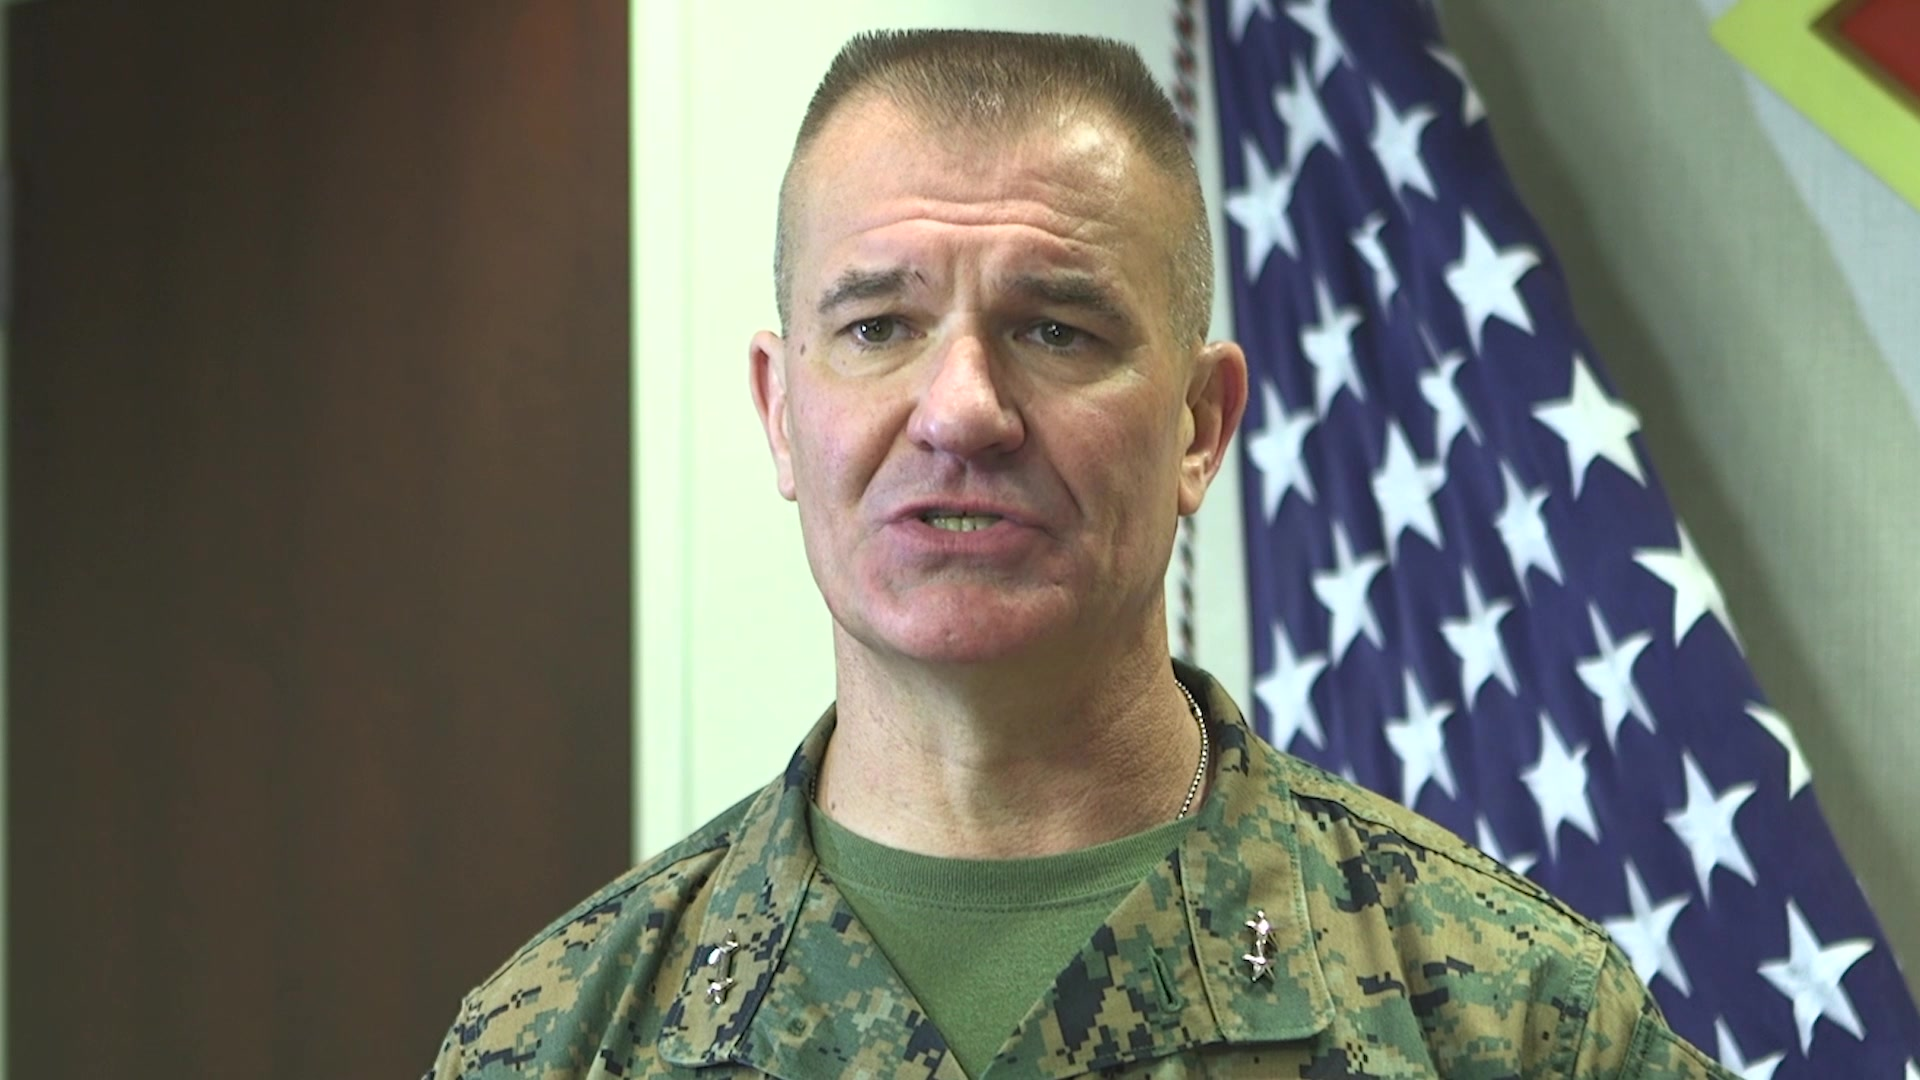 Marine Maj. Gen. Karsten S. Heckl and Sgt. Maj. Jacob M. Reiff pose for a video at Marine Corps Air Station Cherry Point, North Carolina, March 20, 2020. The video informs Marines, Sailors and their families about actions being taken in place during the COVID-19. Heckl is the commanding general for 2nd Marine Aircraft Wing. Reiff is the sergeant major for 2nd Marine Aircraft Wing. (U.S. Marine Corps video by Cpl. Paige C. Stade)